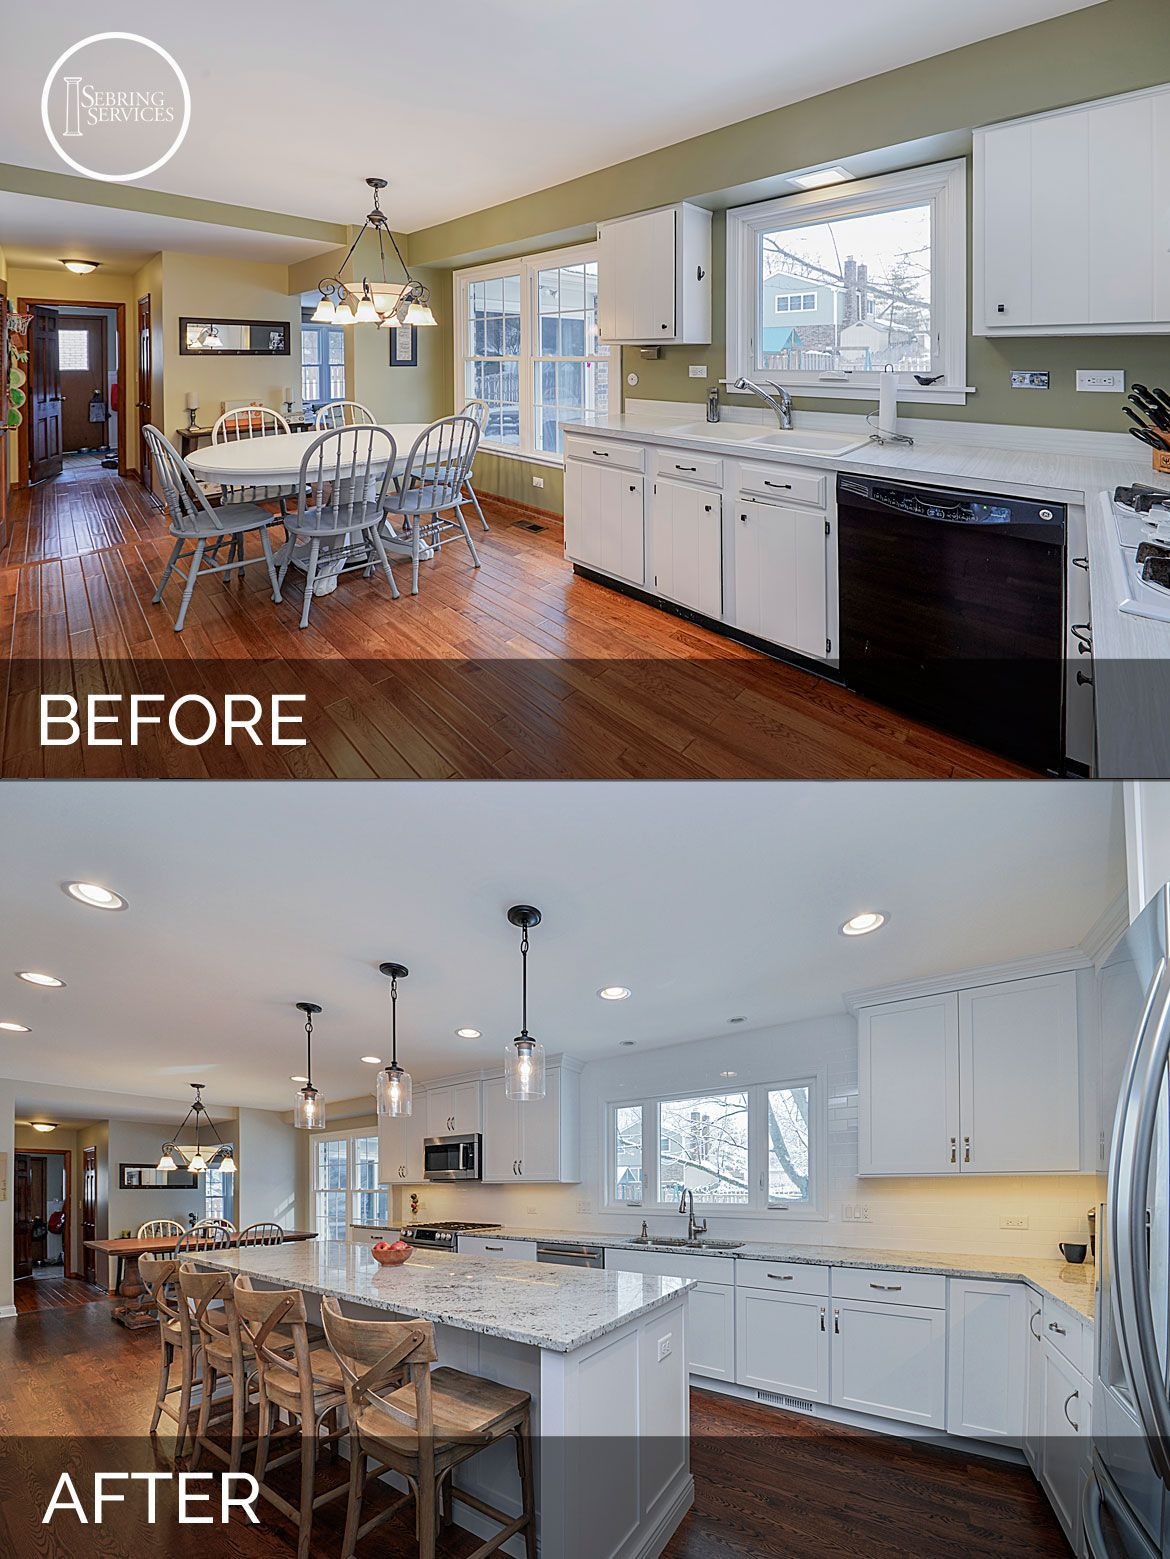 Before and After Kitchen Remodeling - Sebring Services | House ideas ...